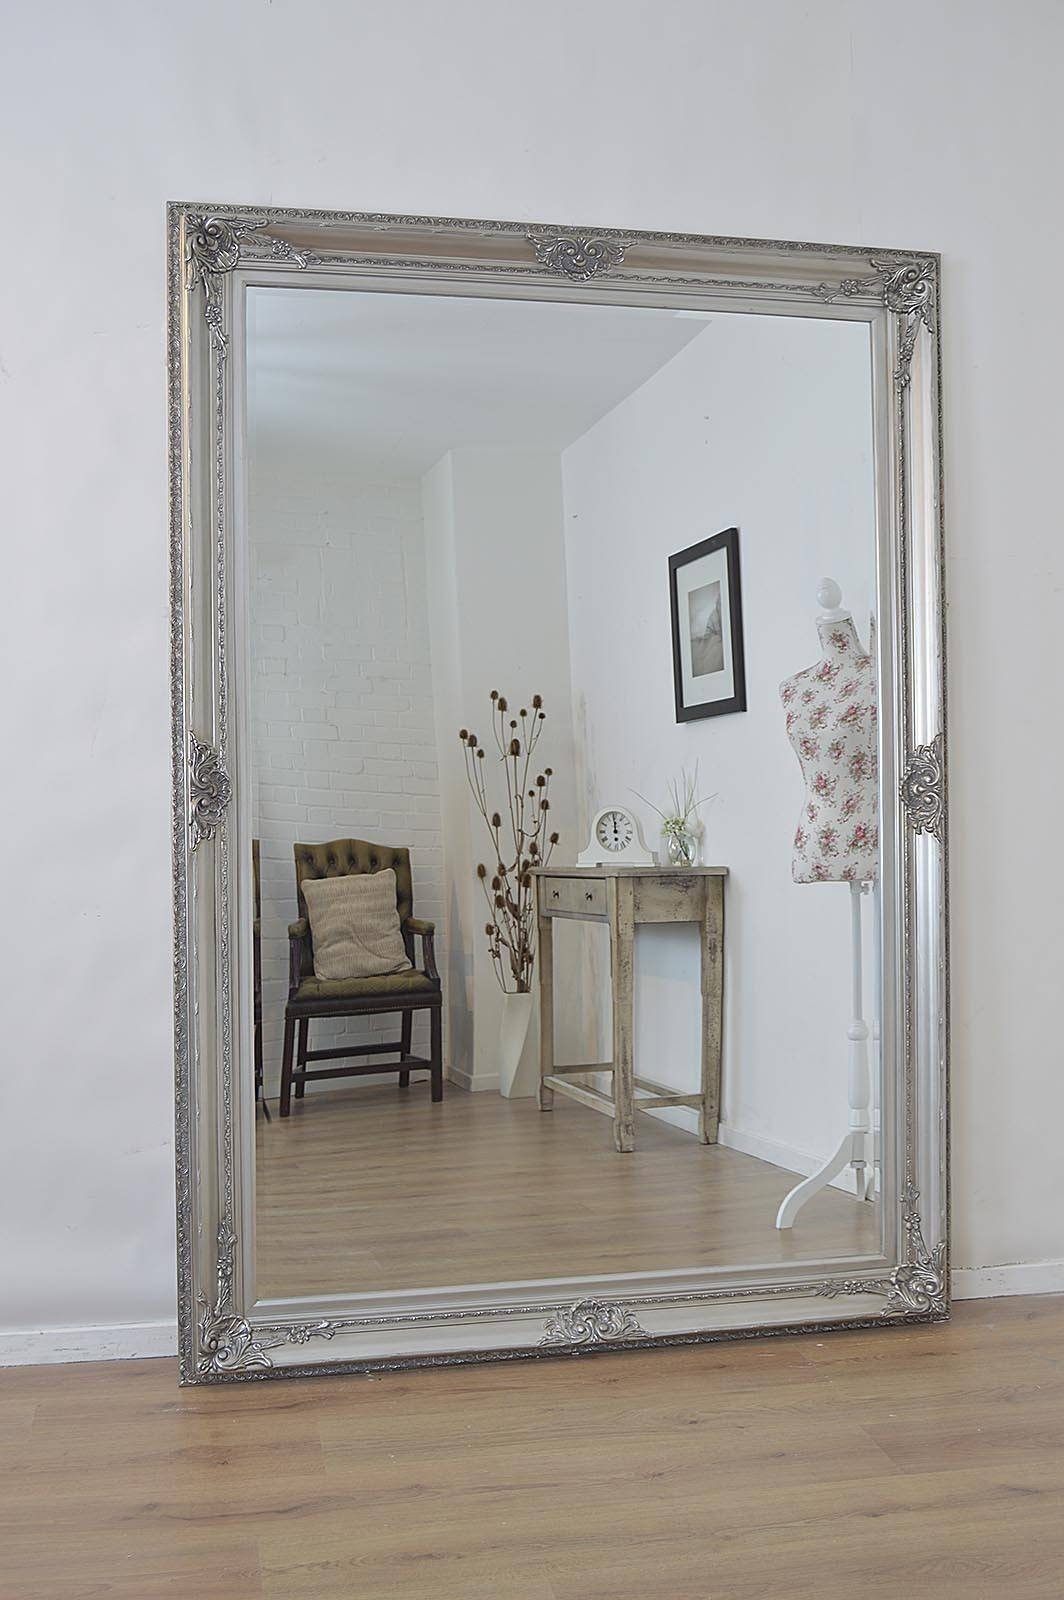 Large Wall Mirrors Tips To Place The Mirror In The Right Style And inside Big Floor Standing Mirrors (Image 11 of 15)